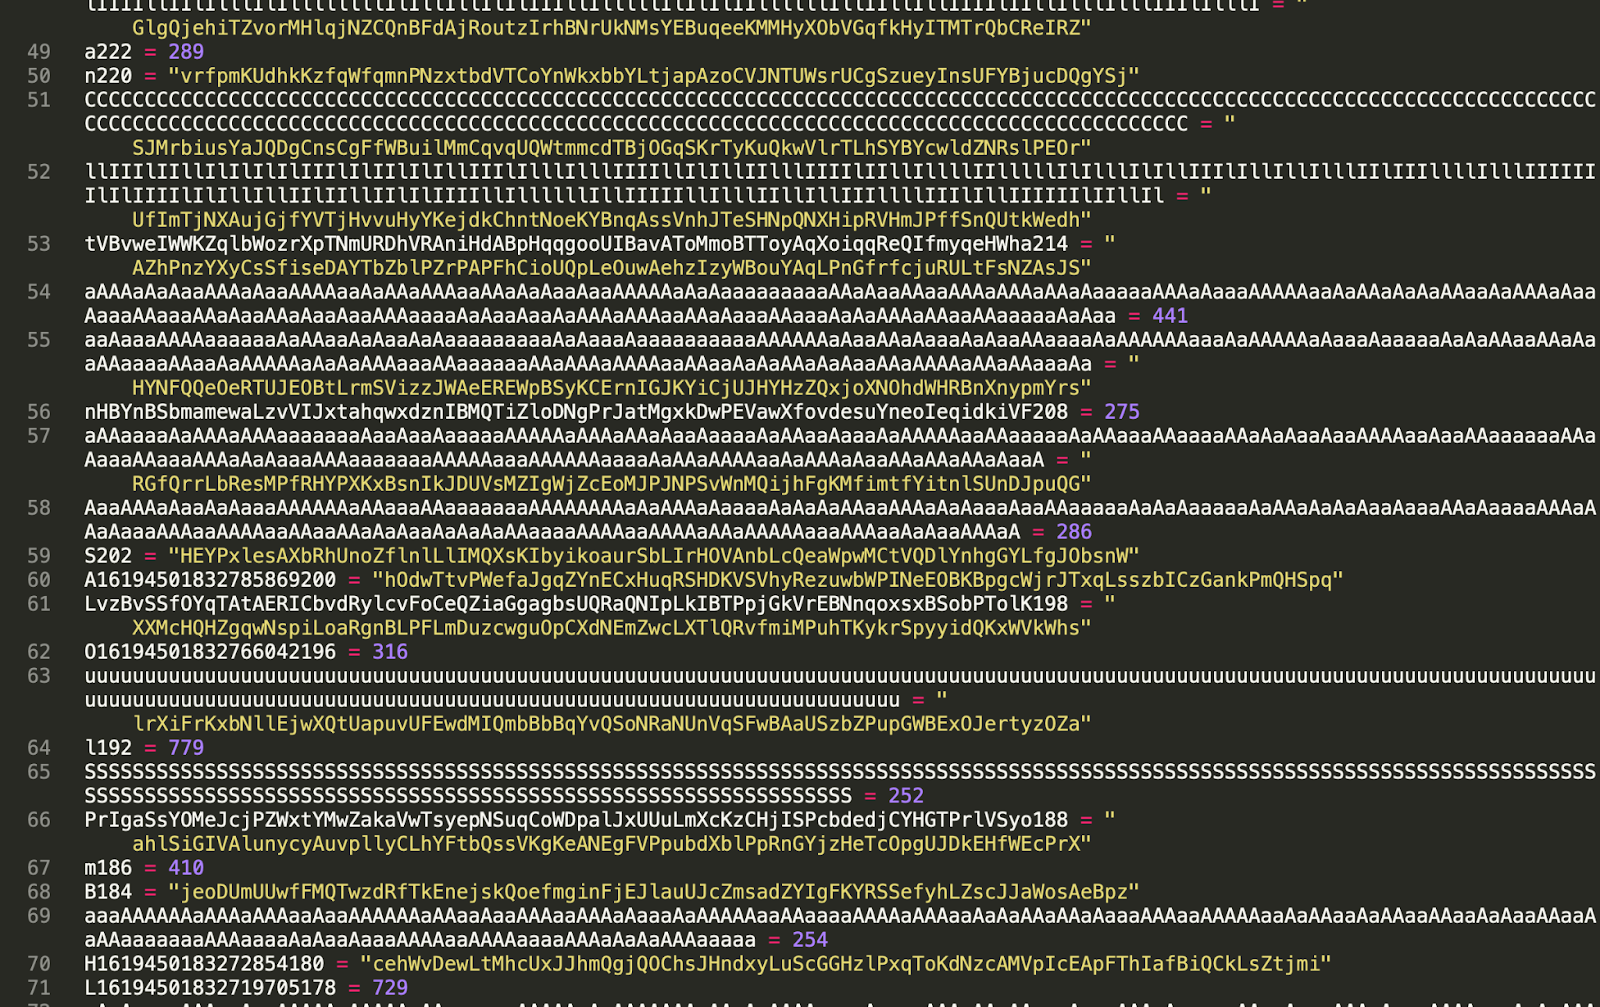 """""""maratlib"""" contains heavily obfuscated code"""